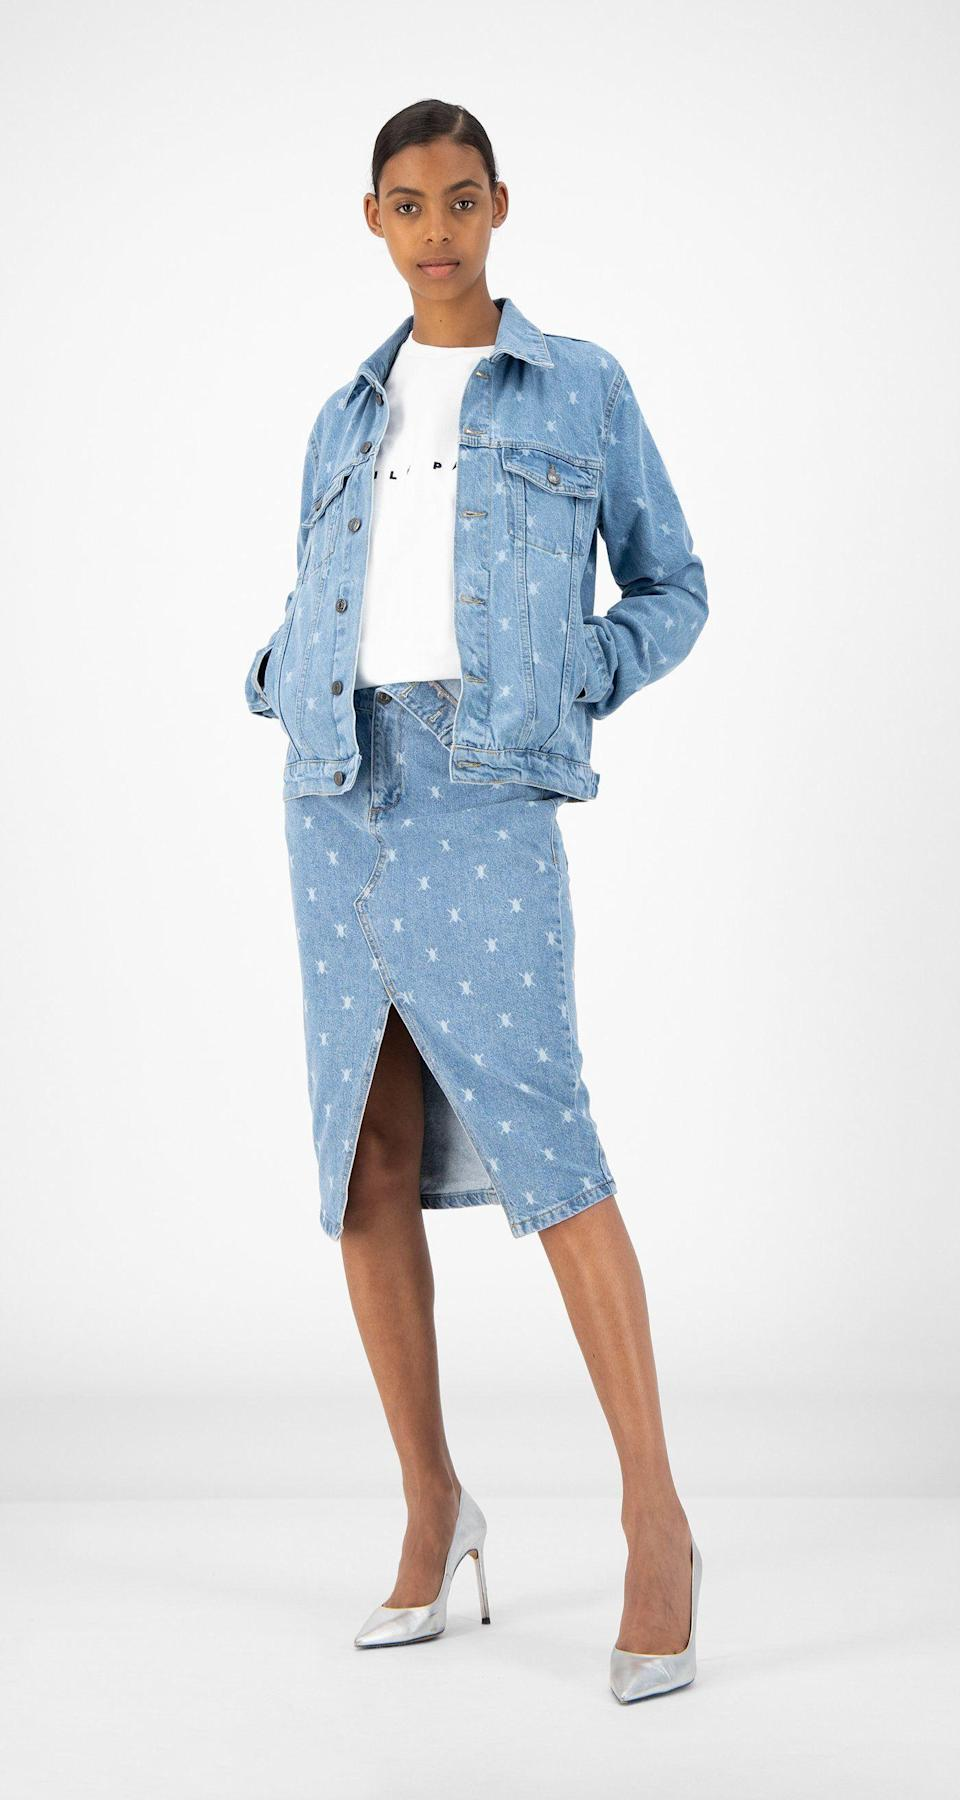 """<p><strong>Daily Paper</strong></p><p>dailypaperclothing.com</p><p><strong>$132.00</strong></p><p><a href=""""https://www.dailypaperclothing.com/collections/women-all/products/light-blue-denim-rehowi-skirt?variant=31587380920454"""" rel=""""nofollow noopener"""" target=""""_blank"""" data-ylk=""""slk:Shop Now"""" class=""""link rapid-noclick-resp"""">Shop Now</a></p><p>Everyone loves a coordinating set, and a denim one with an eye catching slit will get you so many compliments this season. </p>"""